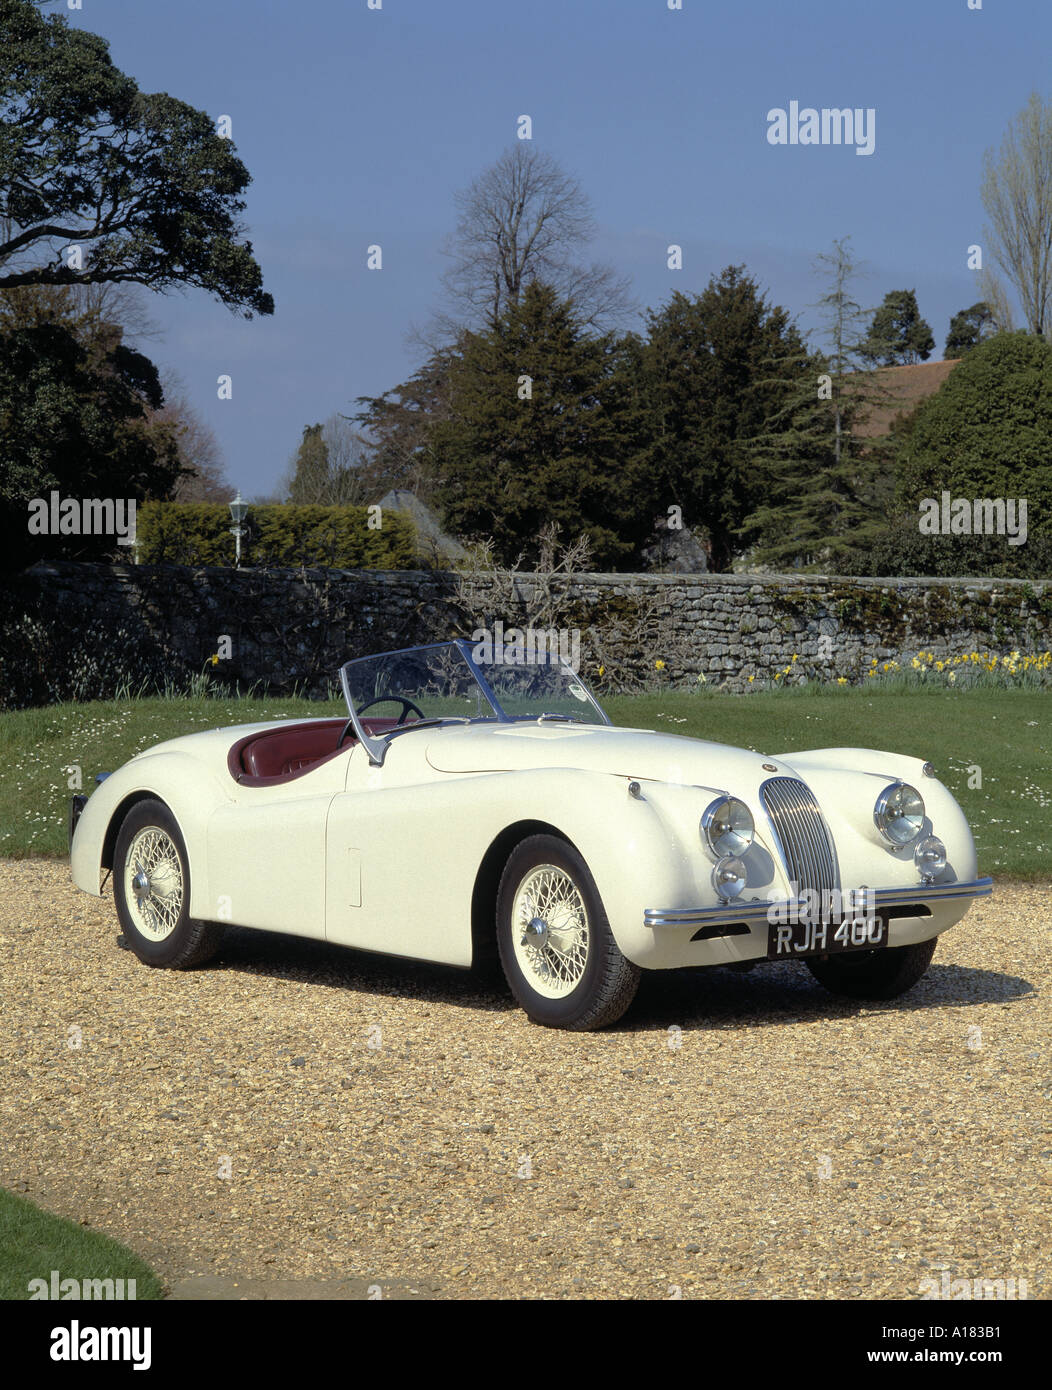 1954 Jaguar XK 120 - Stock Image